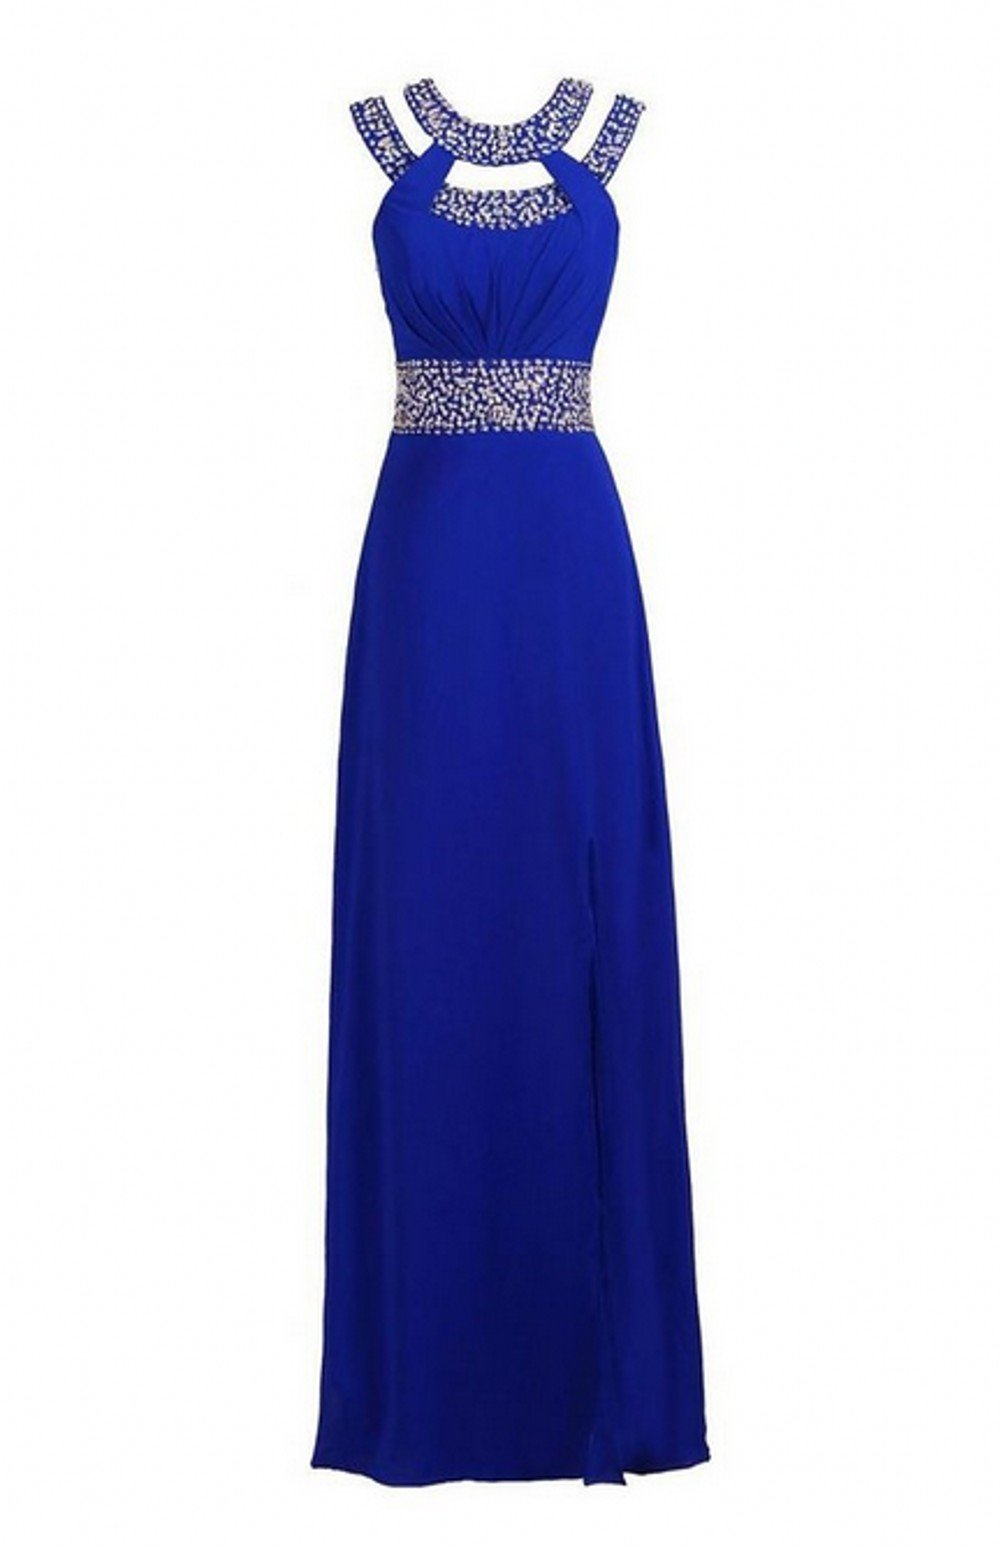 Love Dress Beaded Bridesmaid Evening Party Prom Chiffon Gown Dress Blue Us 16